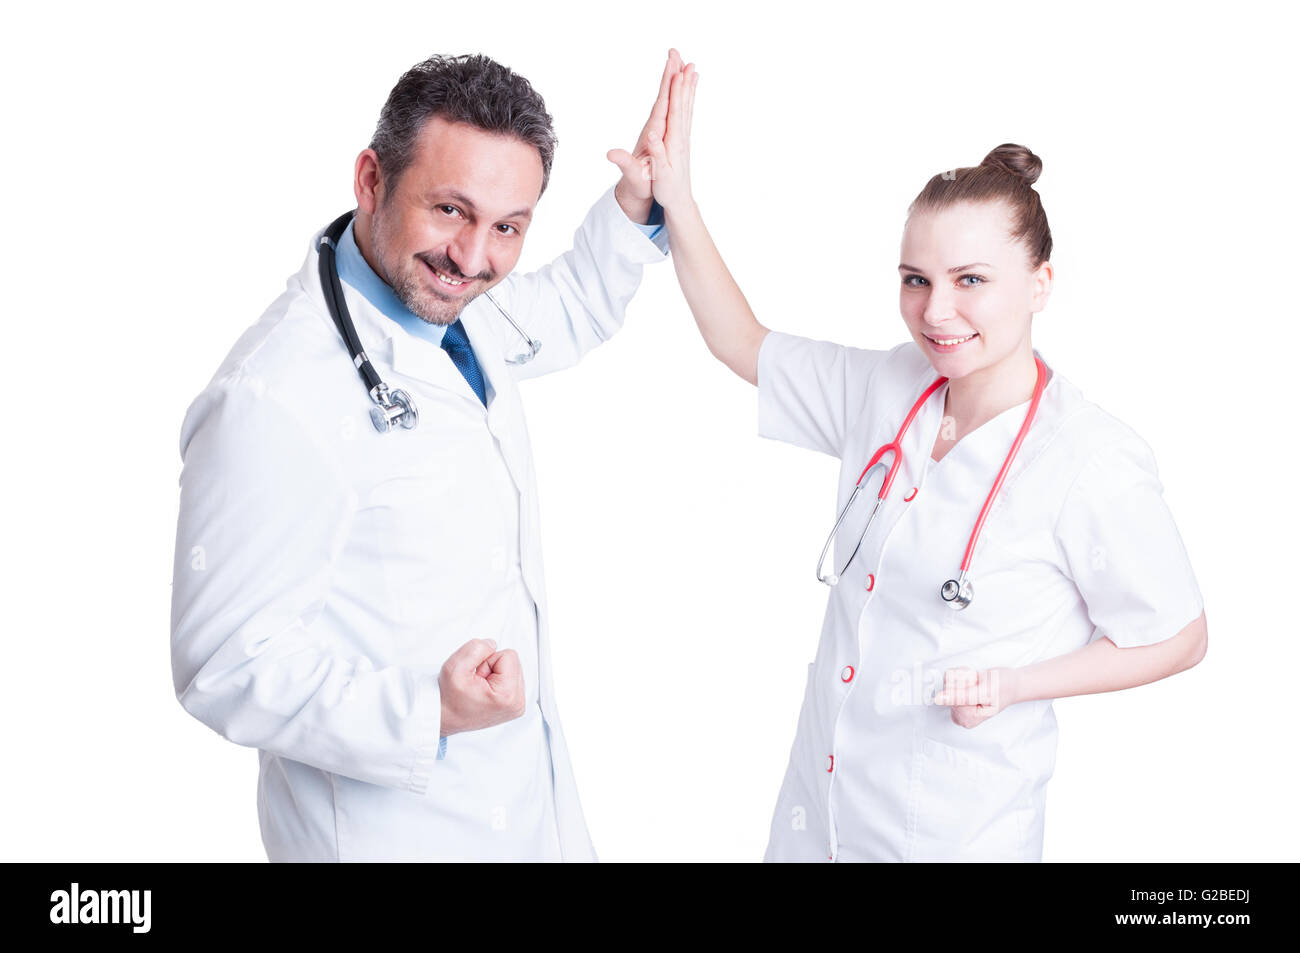 Happy team doctors give high five, smiling and celebrate success of working together isolated on white background - Stock Image